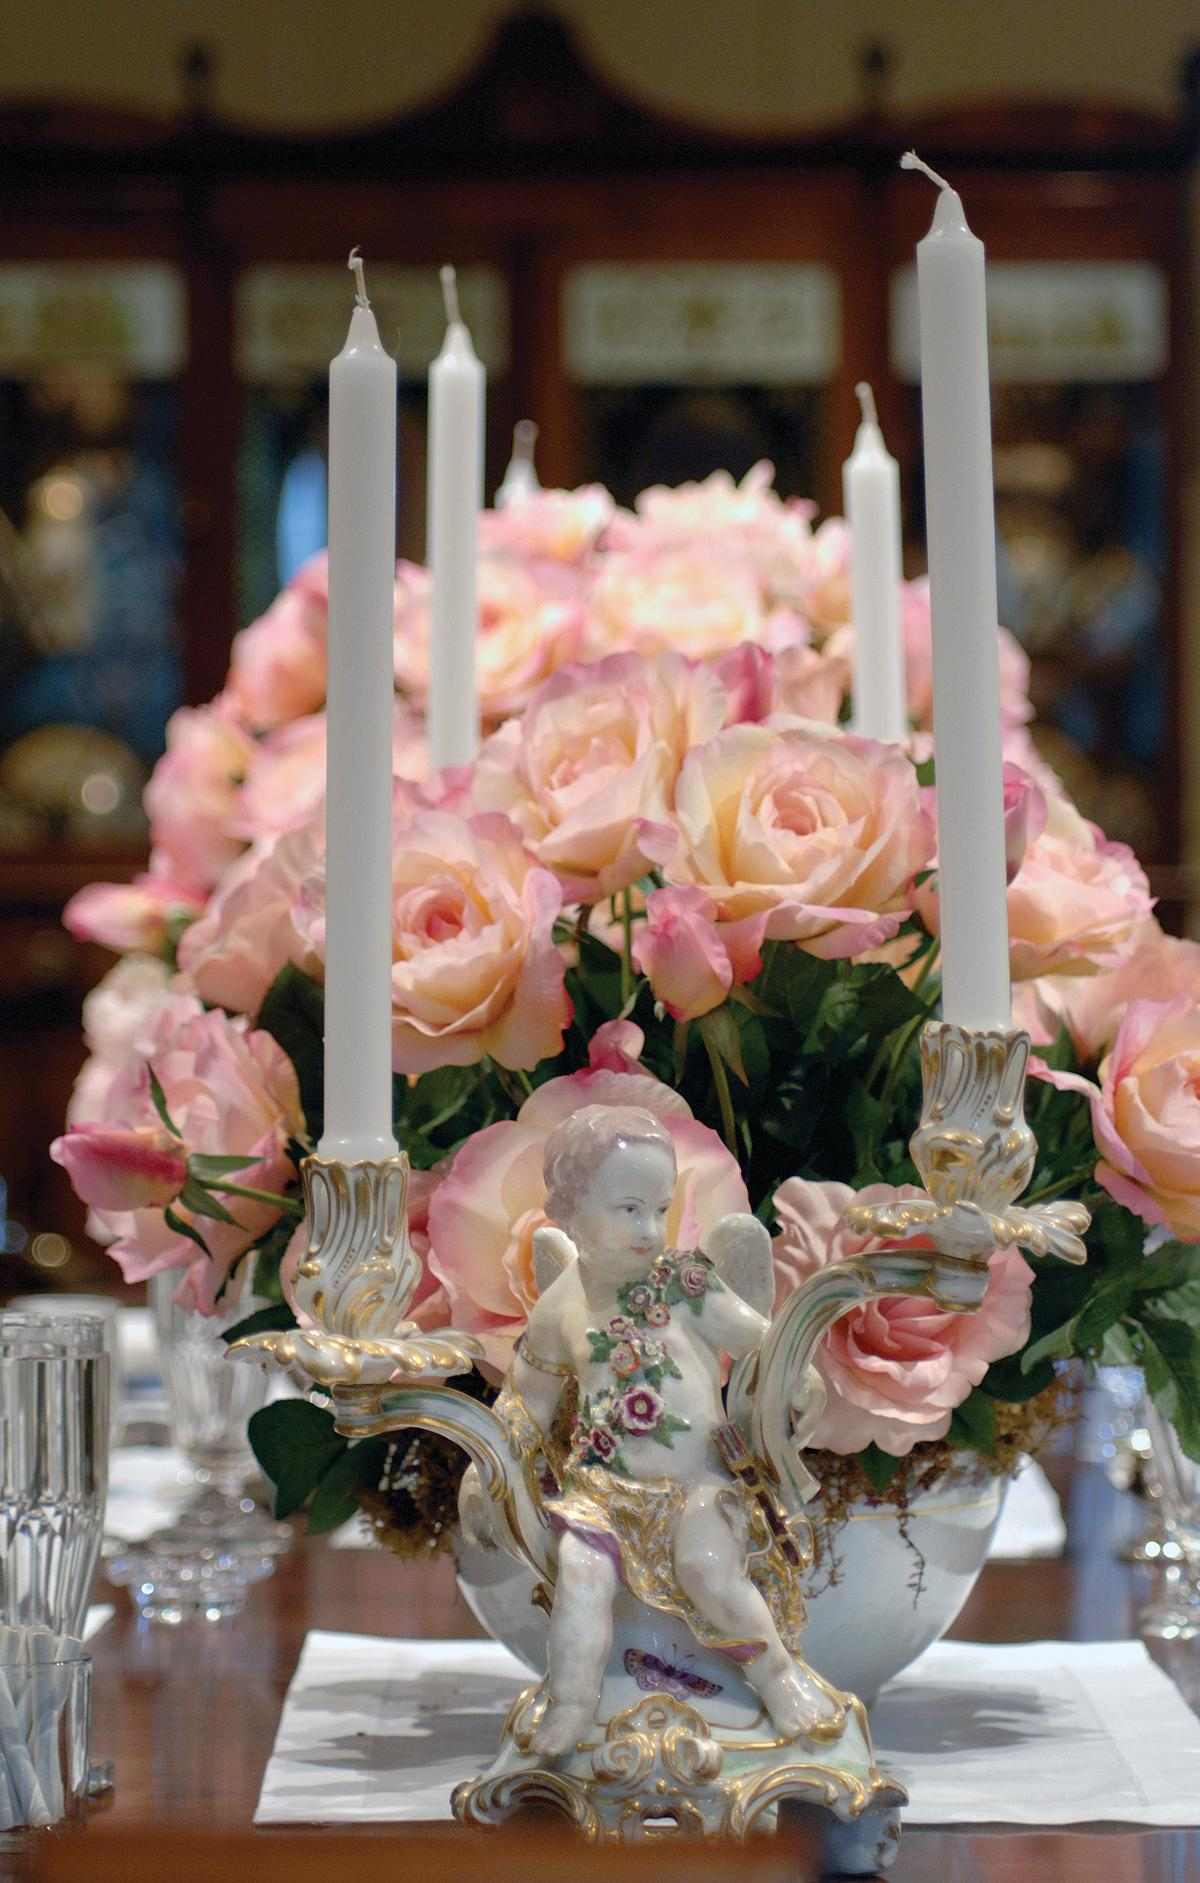 Photograph of candelabras, pink roses in a bouquet